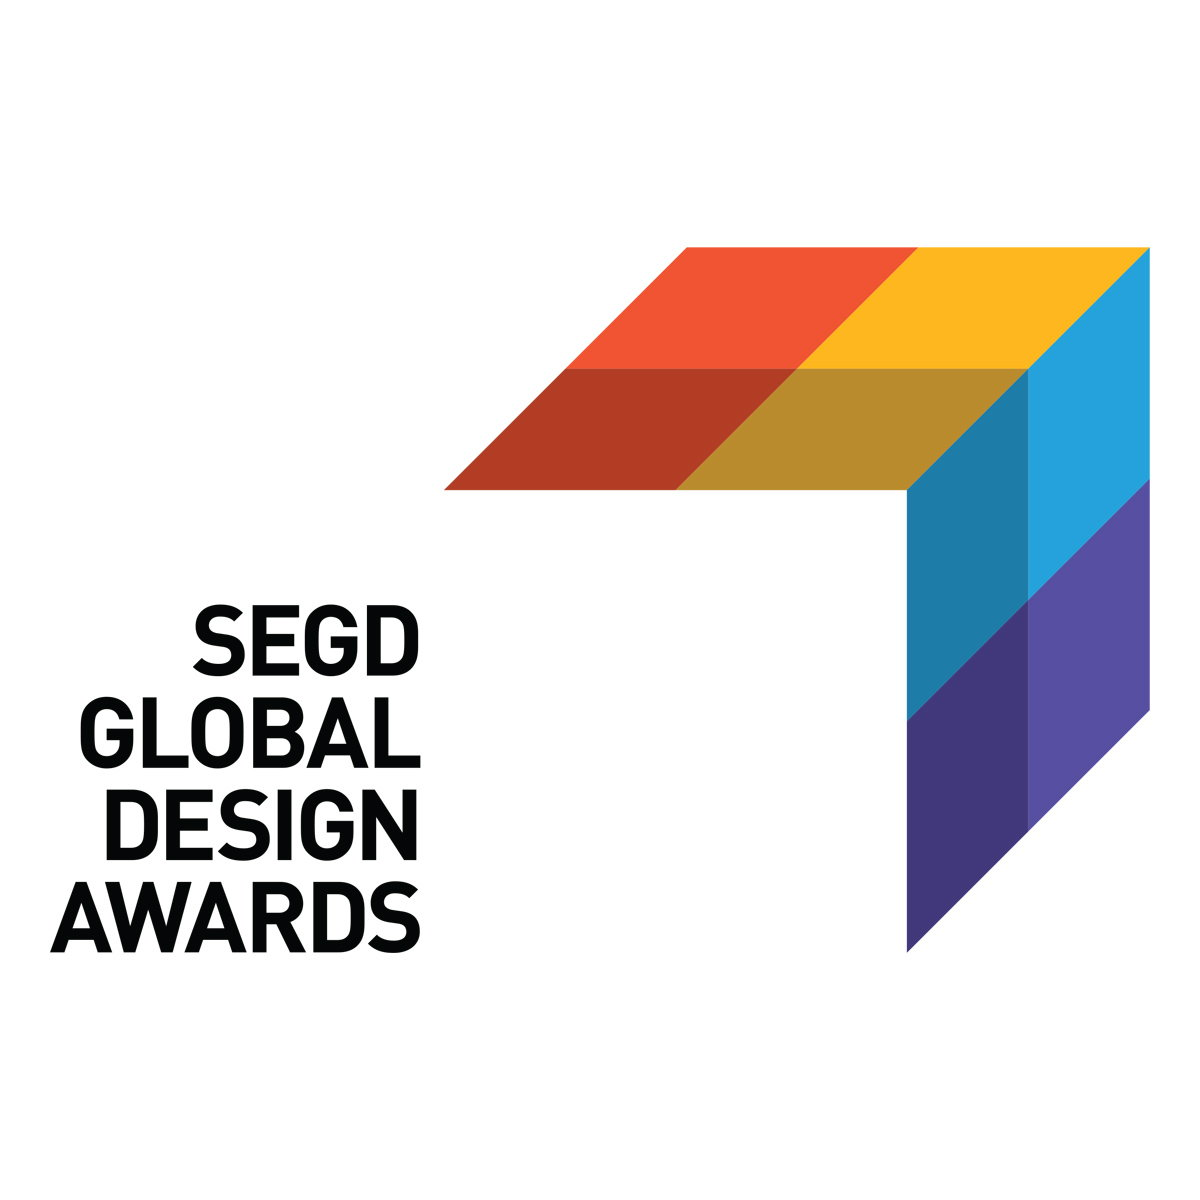 2017 SEGD Global Design Awards